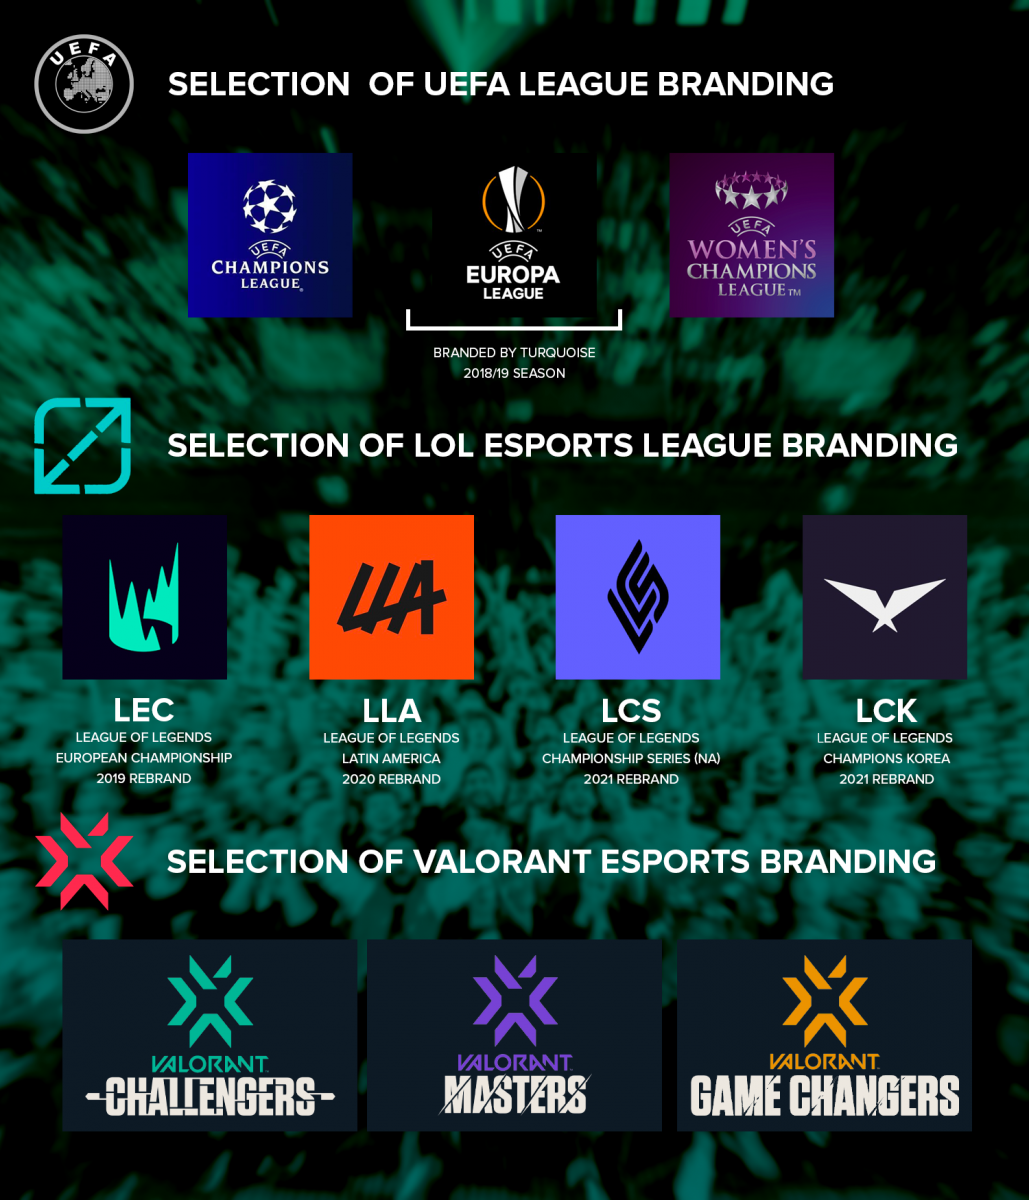 Turquoise: Selections of League Branding